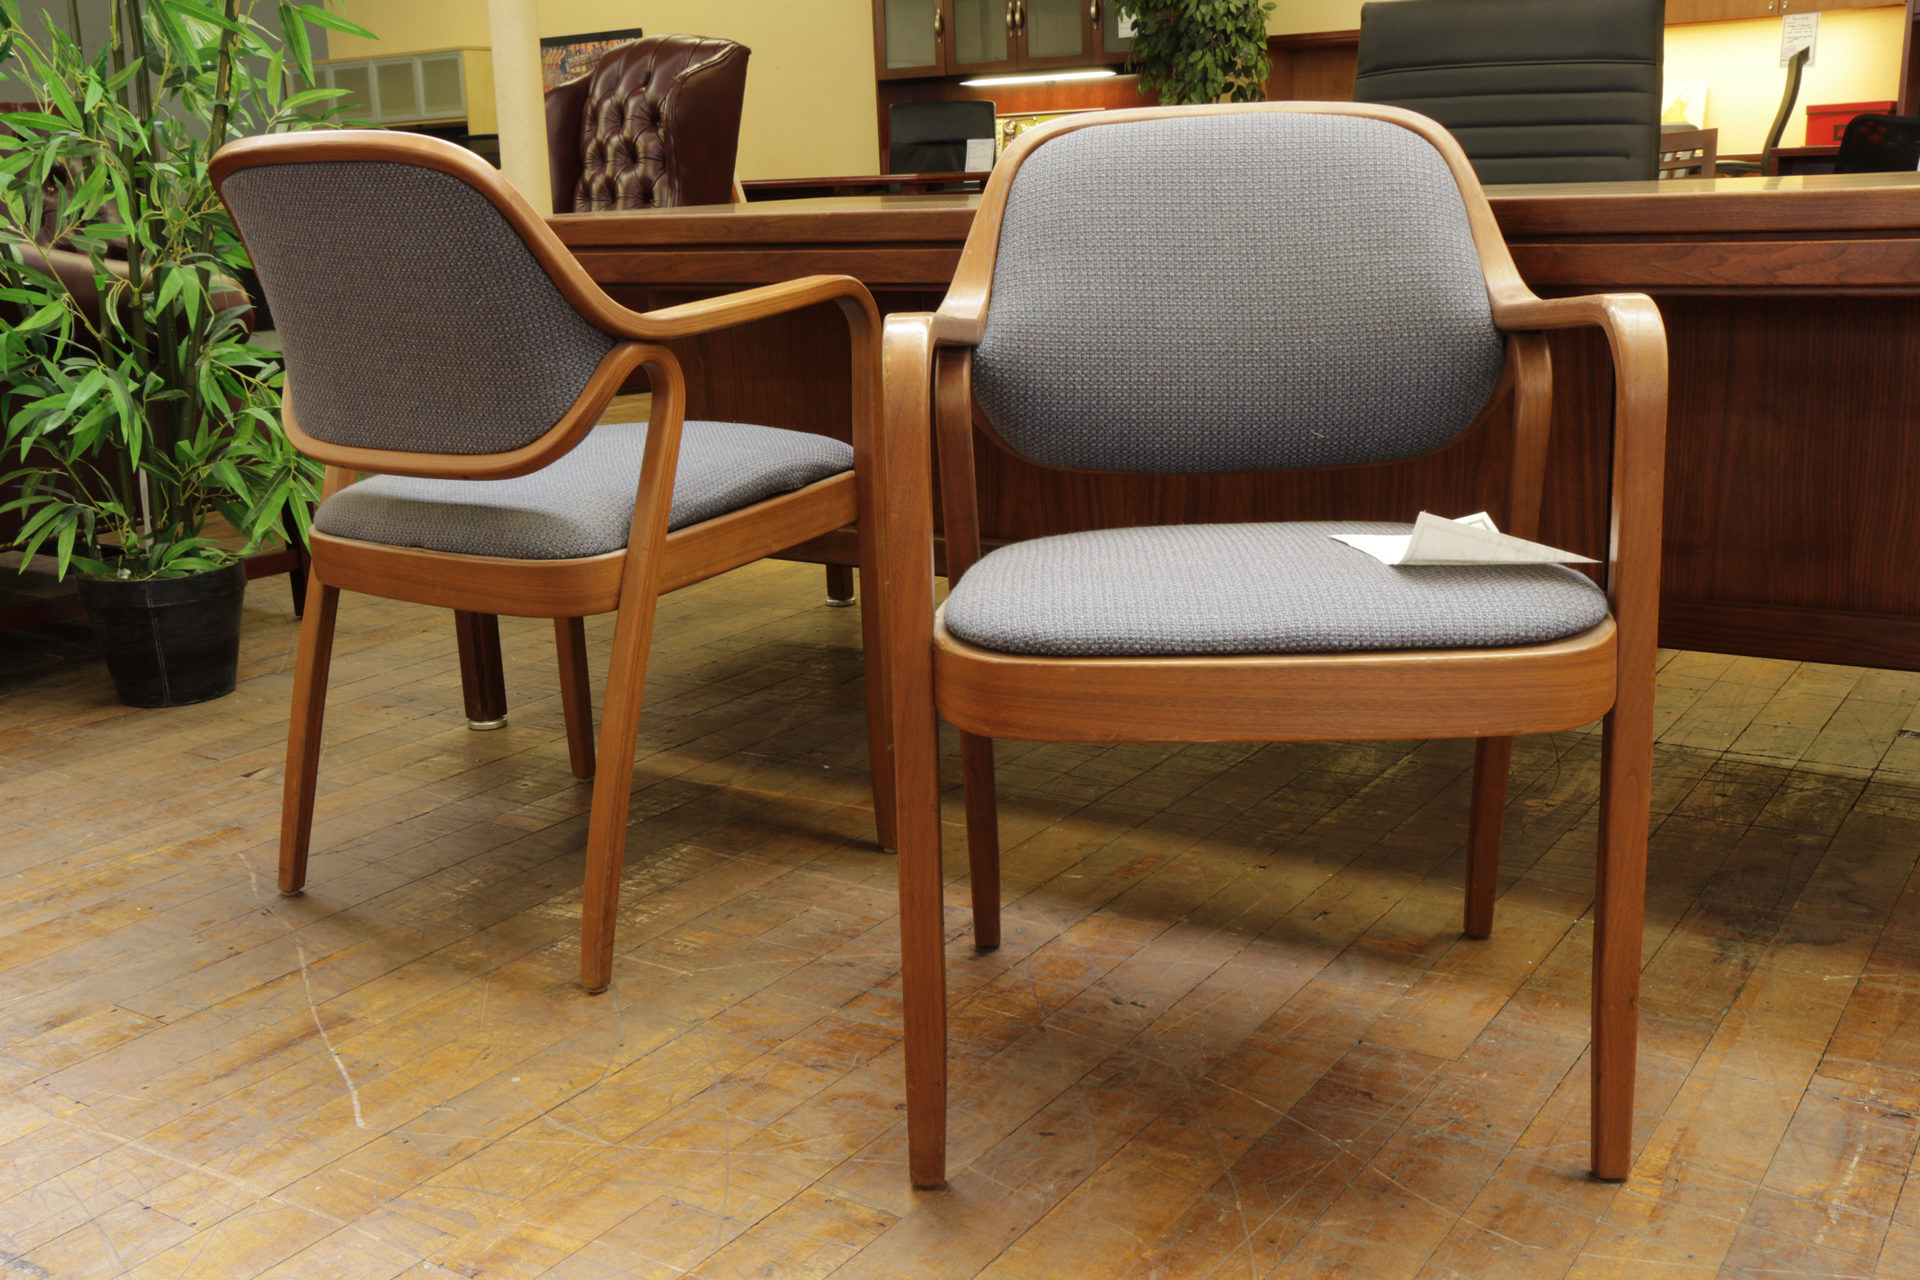 Knoll 'Petit' Bent Wood Frame Side Chairs (Used)